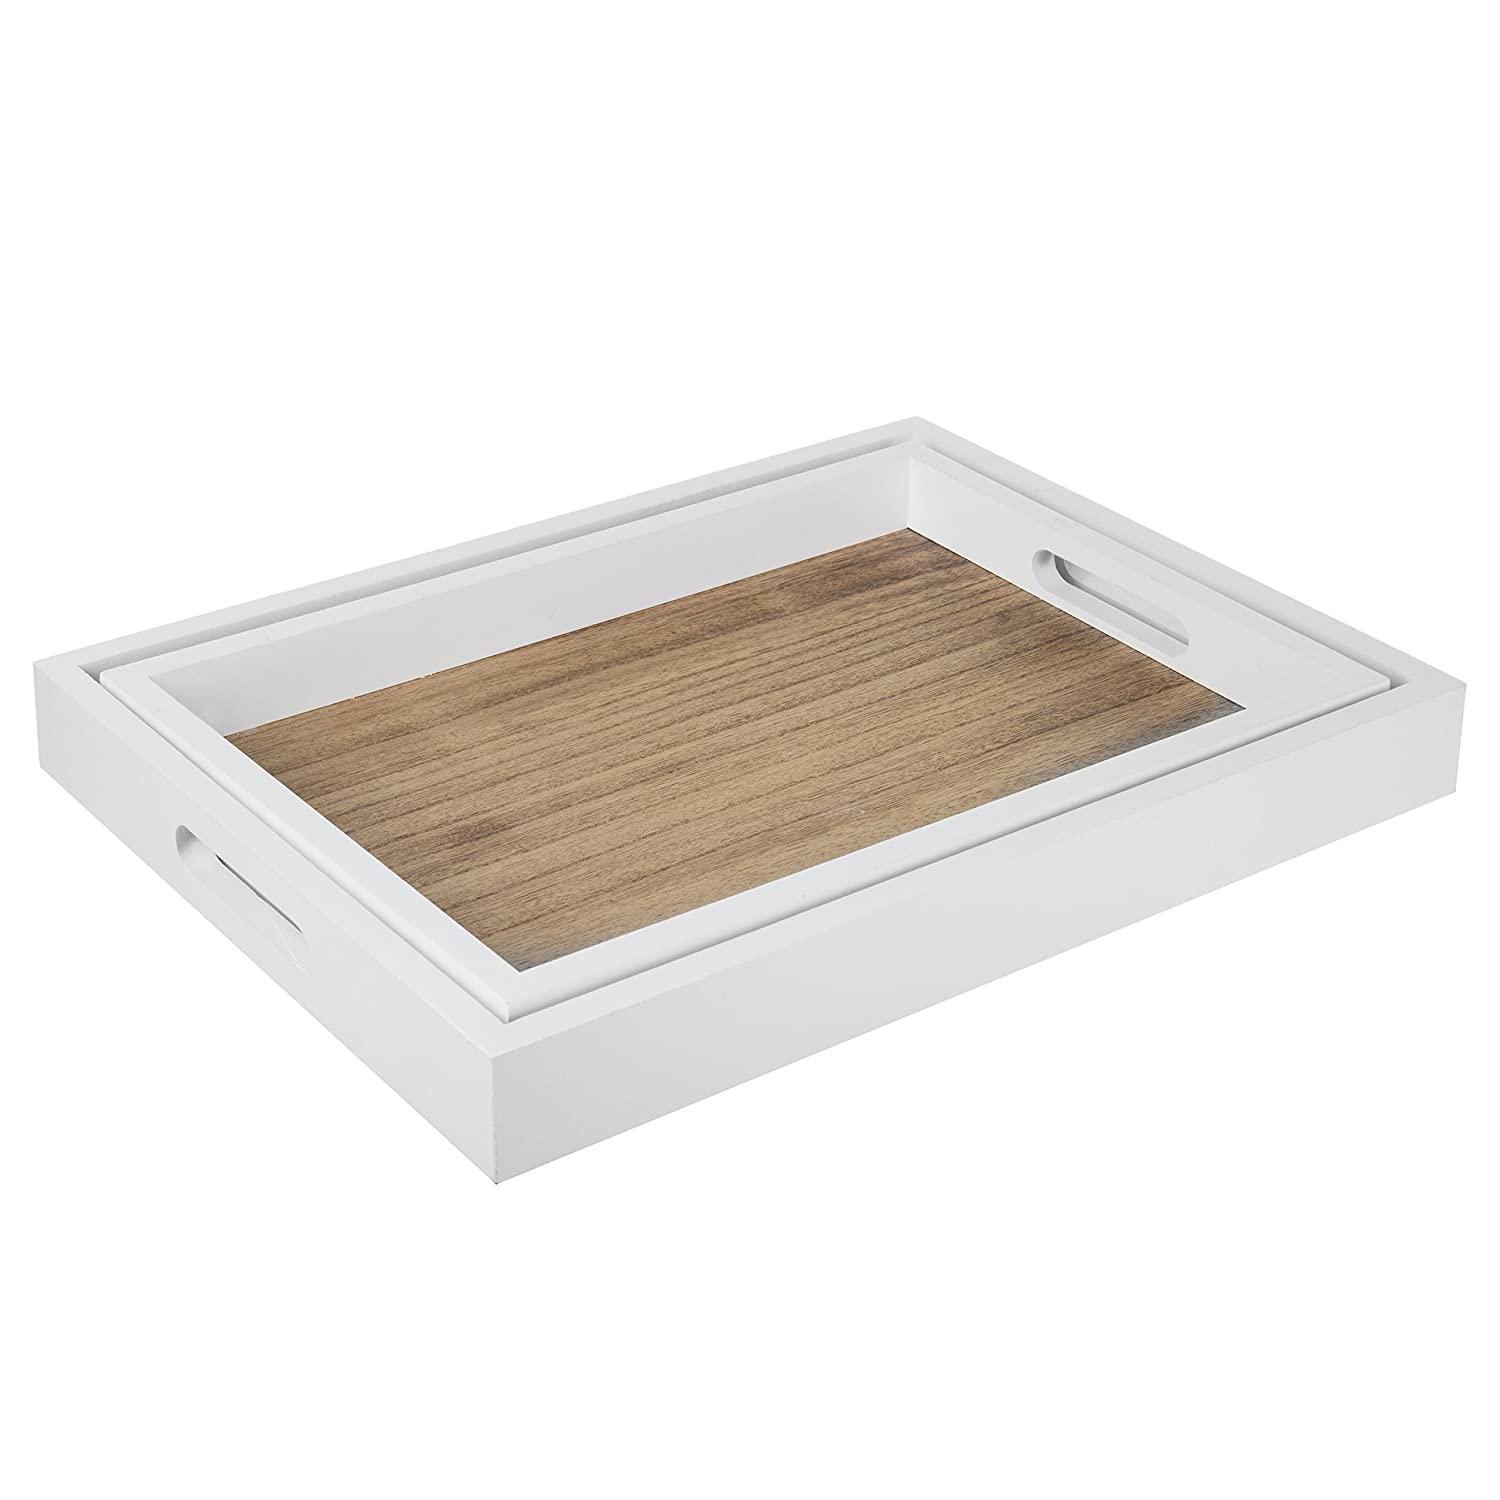 Set of 2 Brown//White MyGift Decorative Natural Wood Nesting Breakfast Serving Tray with Cutout Handles